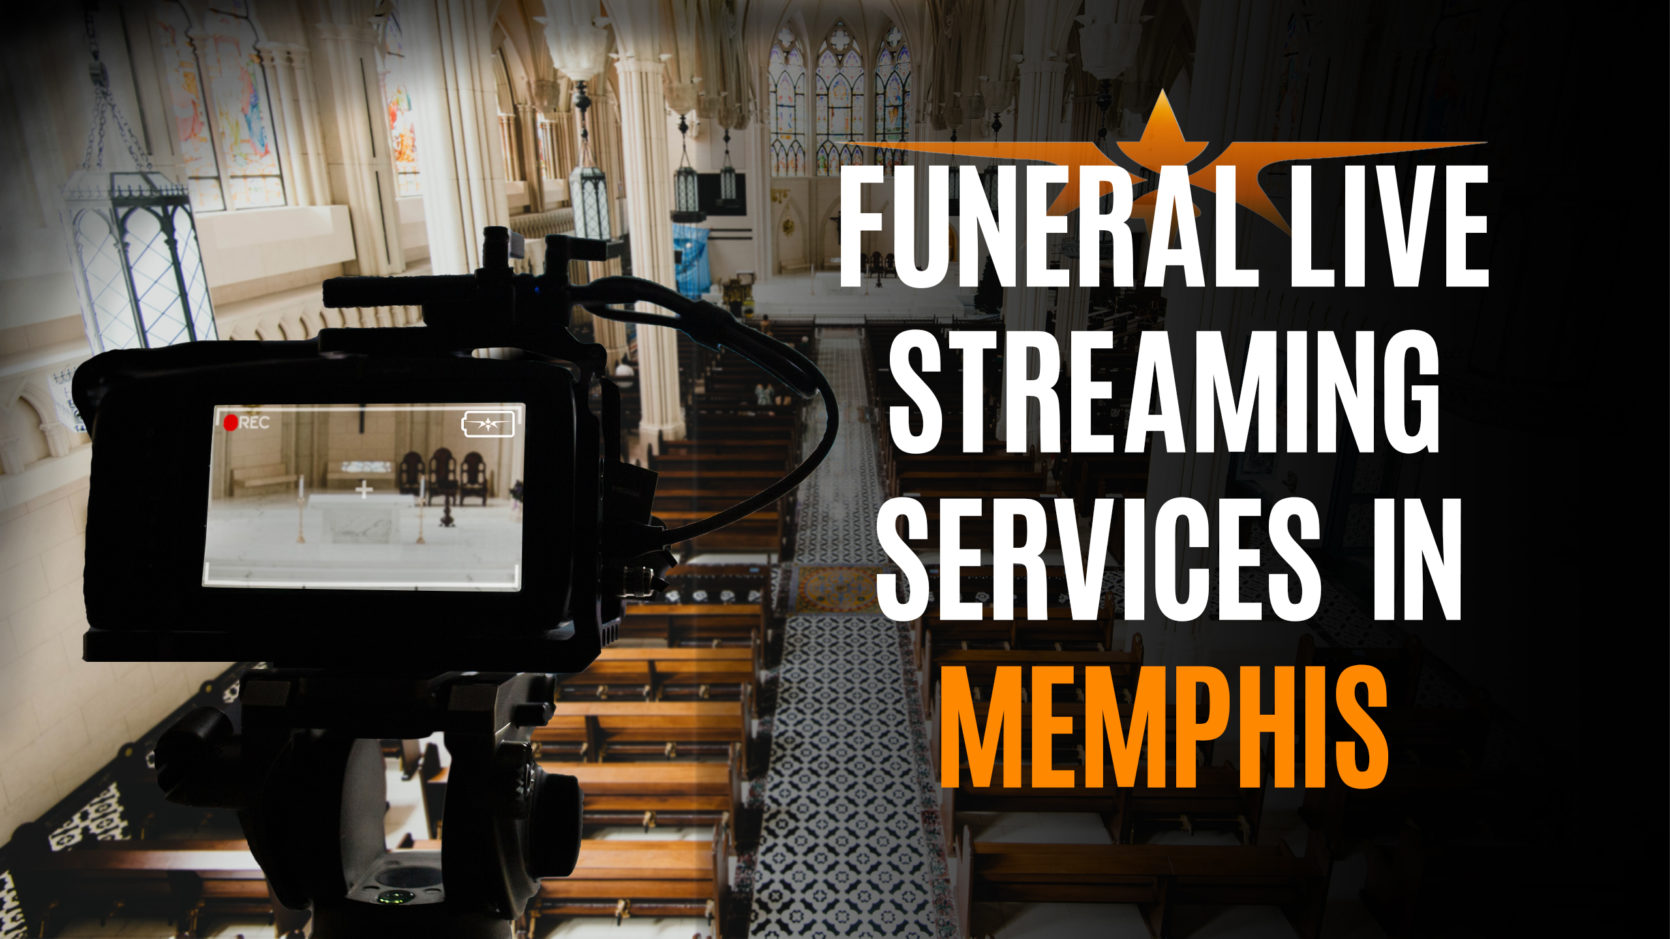 Funeral Live Streaming Services in Memphis